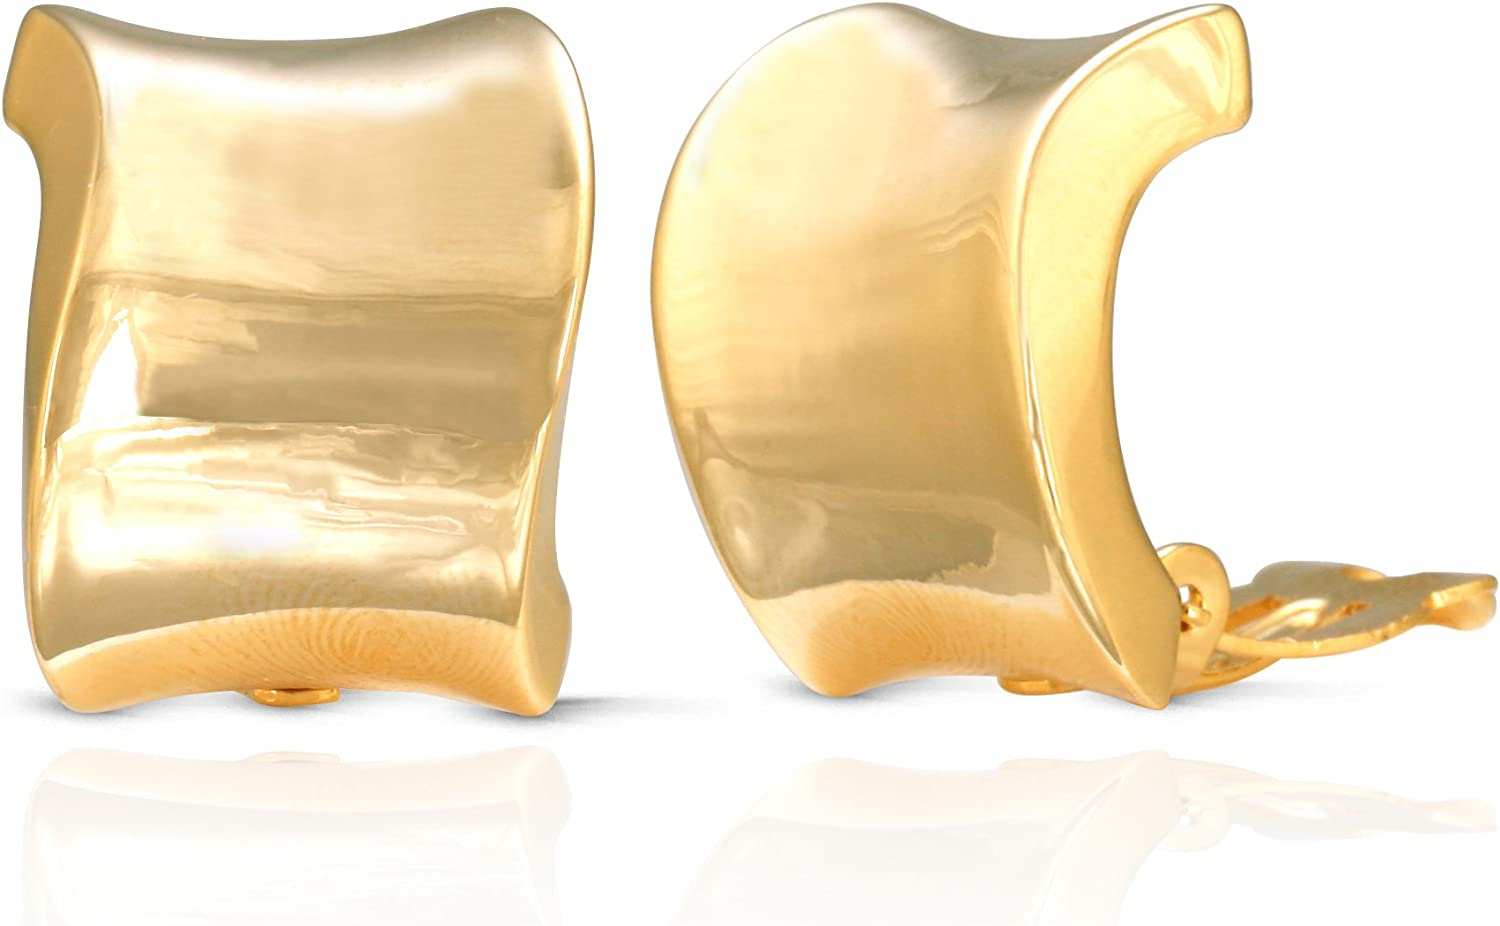 JanKuo overseas Jewelry Gold Plated Shining Cli Finish Super sale Wide Polished Wave